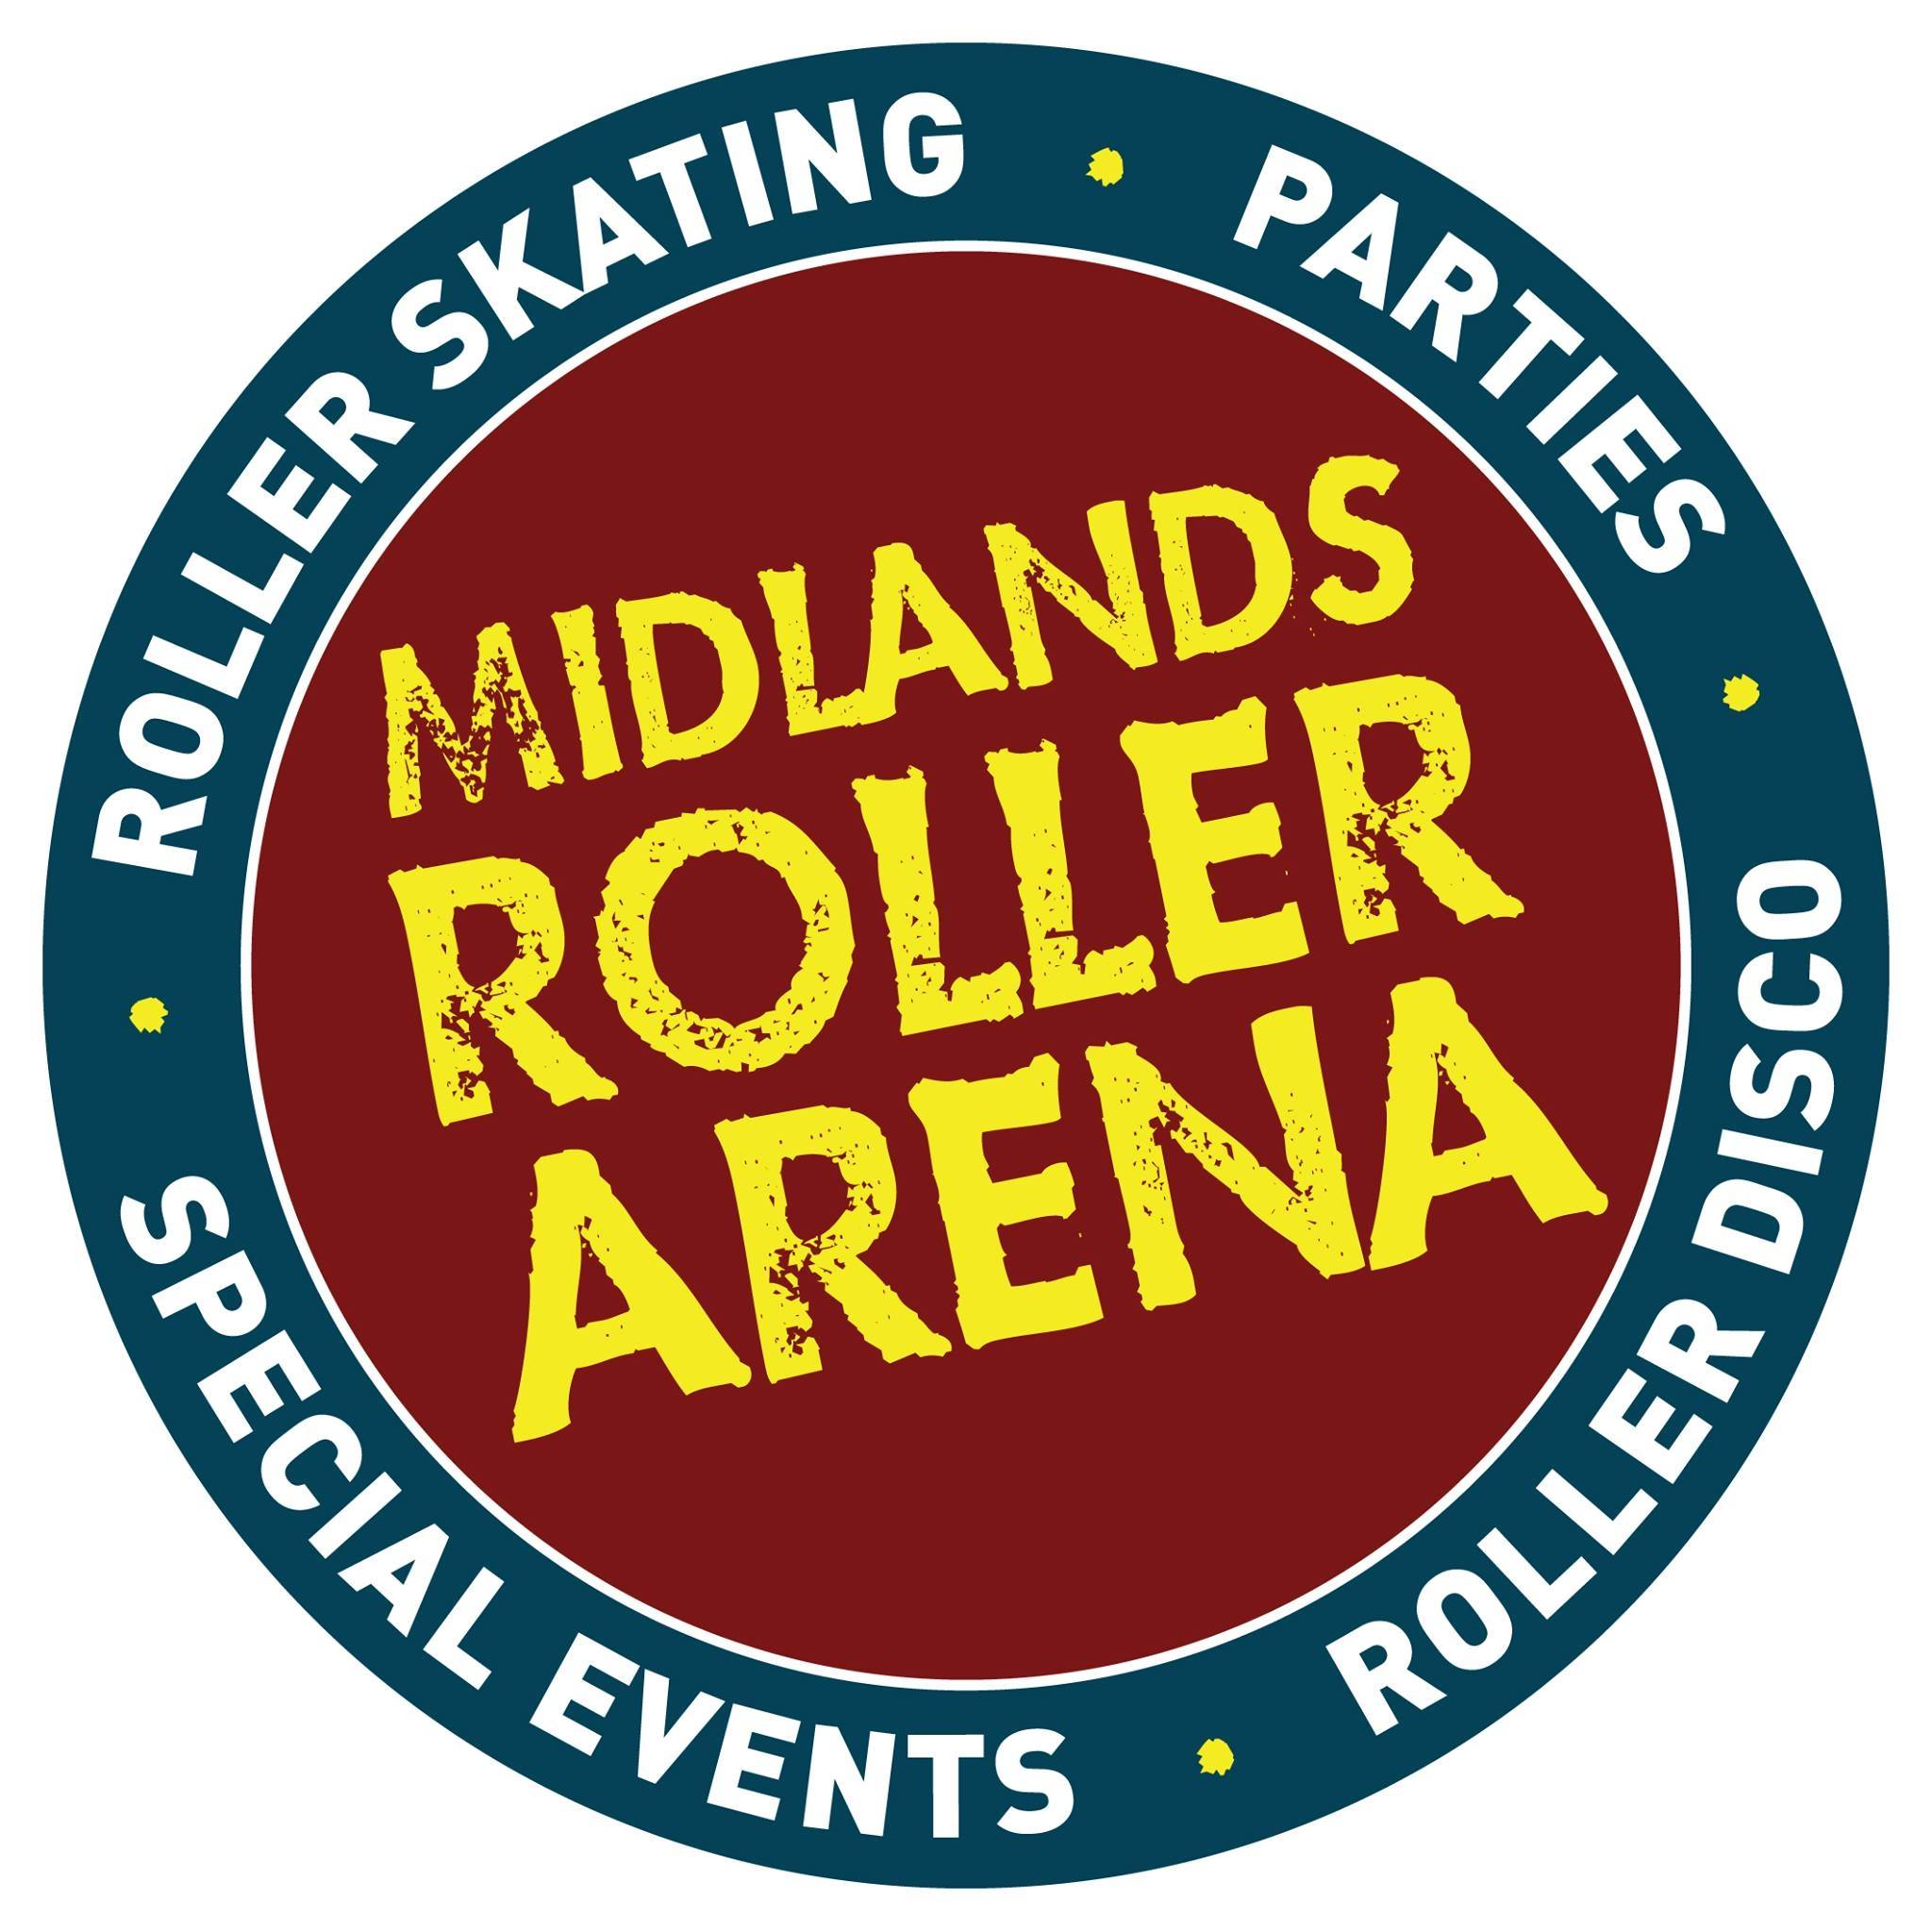 The circular logo for the Midland Roller Arena